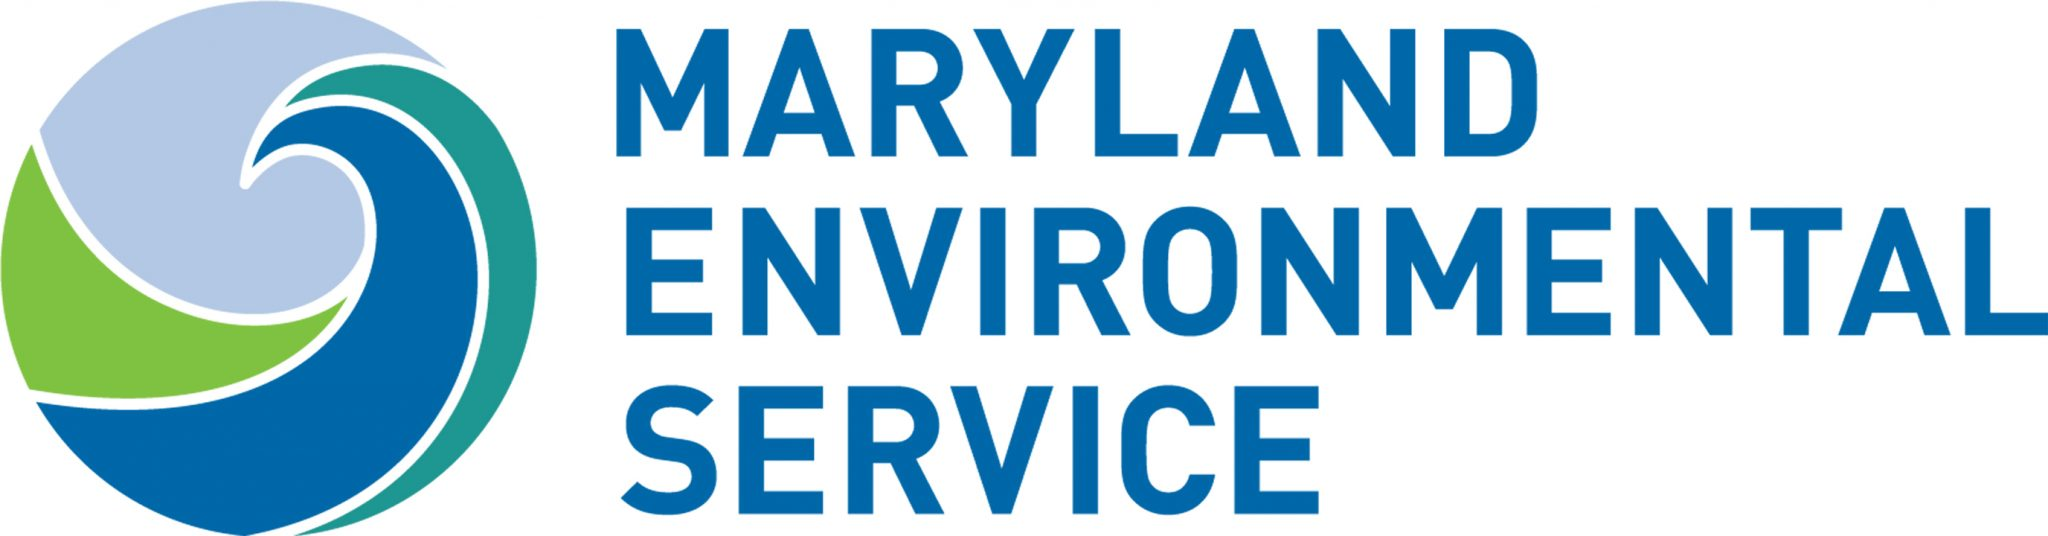 Maryland Environmental Service Wants to Help You Save Money!